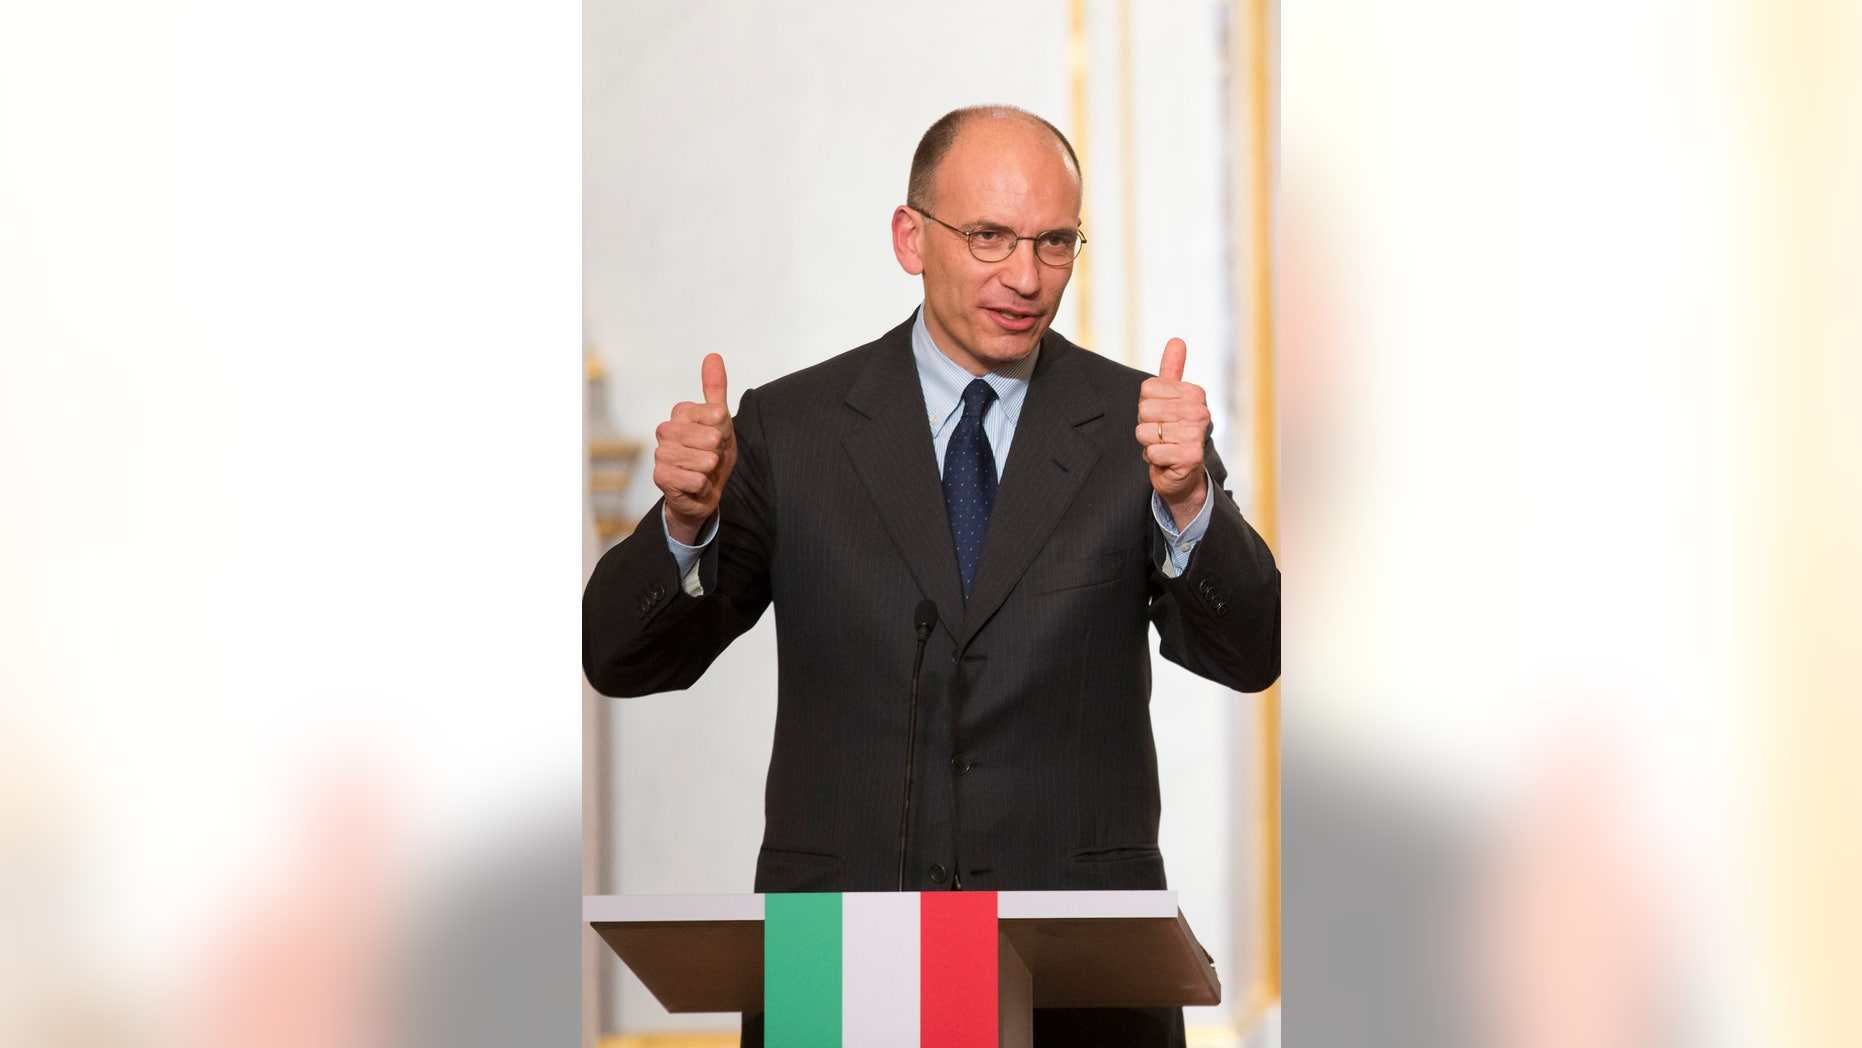 French President Francois Hollande, right, listens to Italy's Prime Minister Enrico Letta during  a press conference at the Elysee Palace in Paris, Wednesday, May 1, 2013.   (AP Photo/Jacques Brinon)